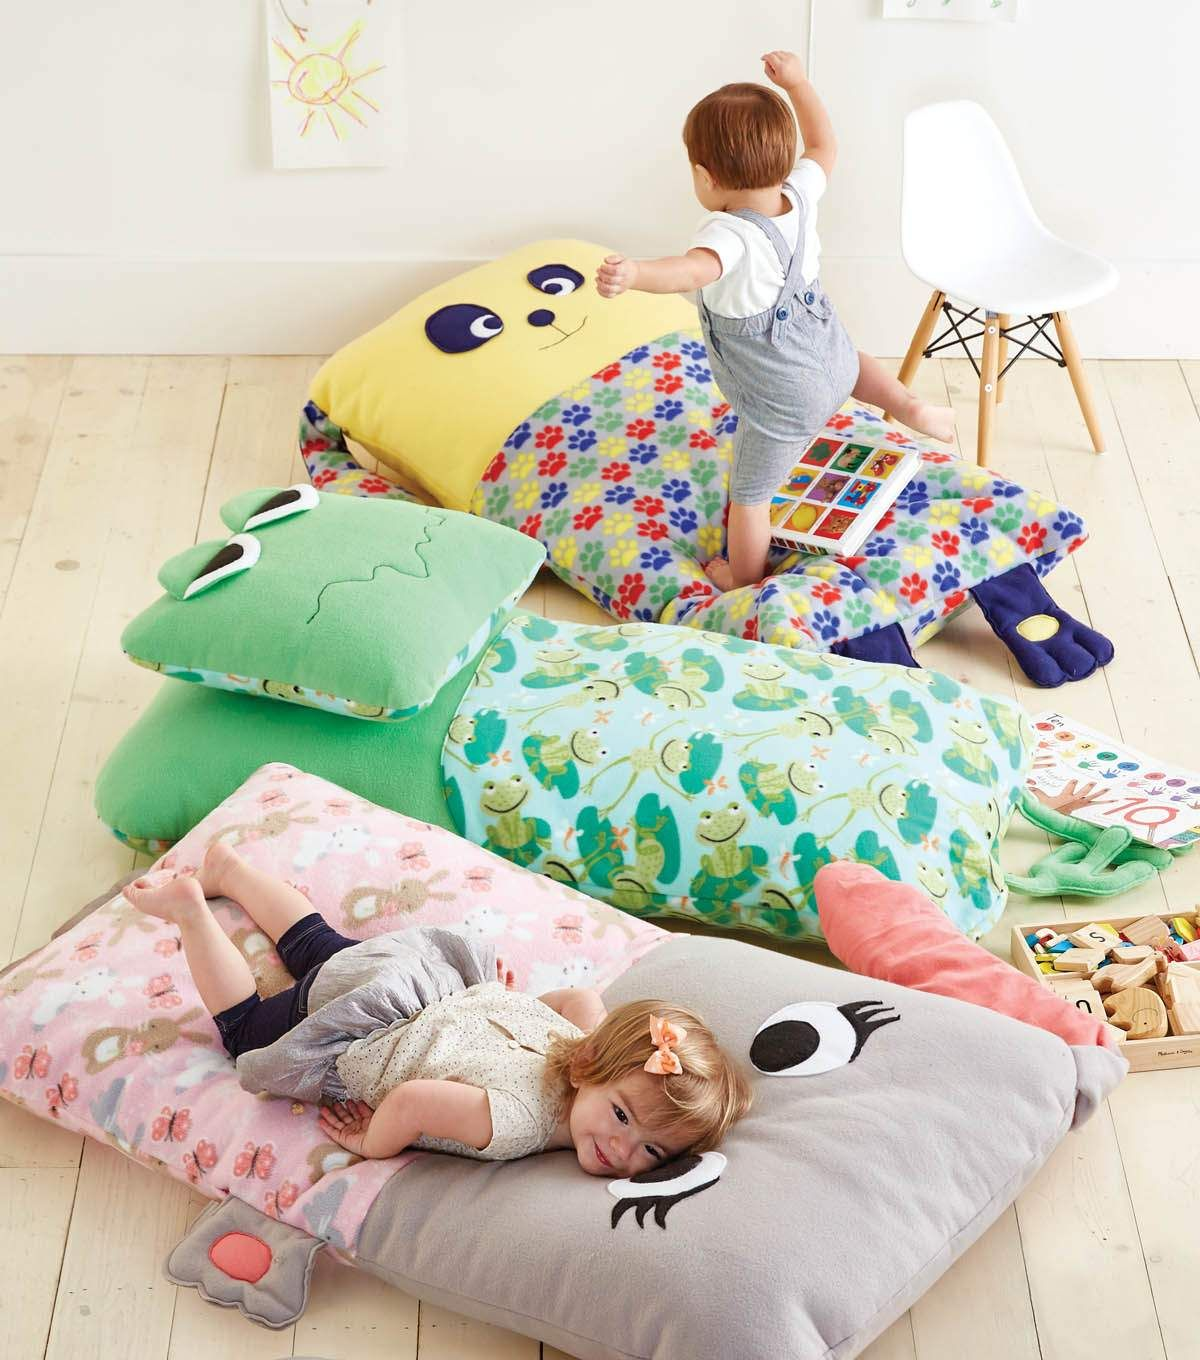 How To Sew A Child Floor Pillow | sewing | Pinterest | Floor pillows ...